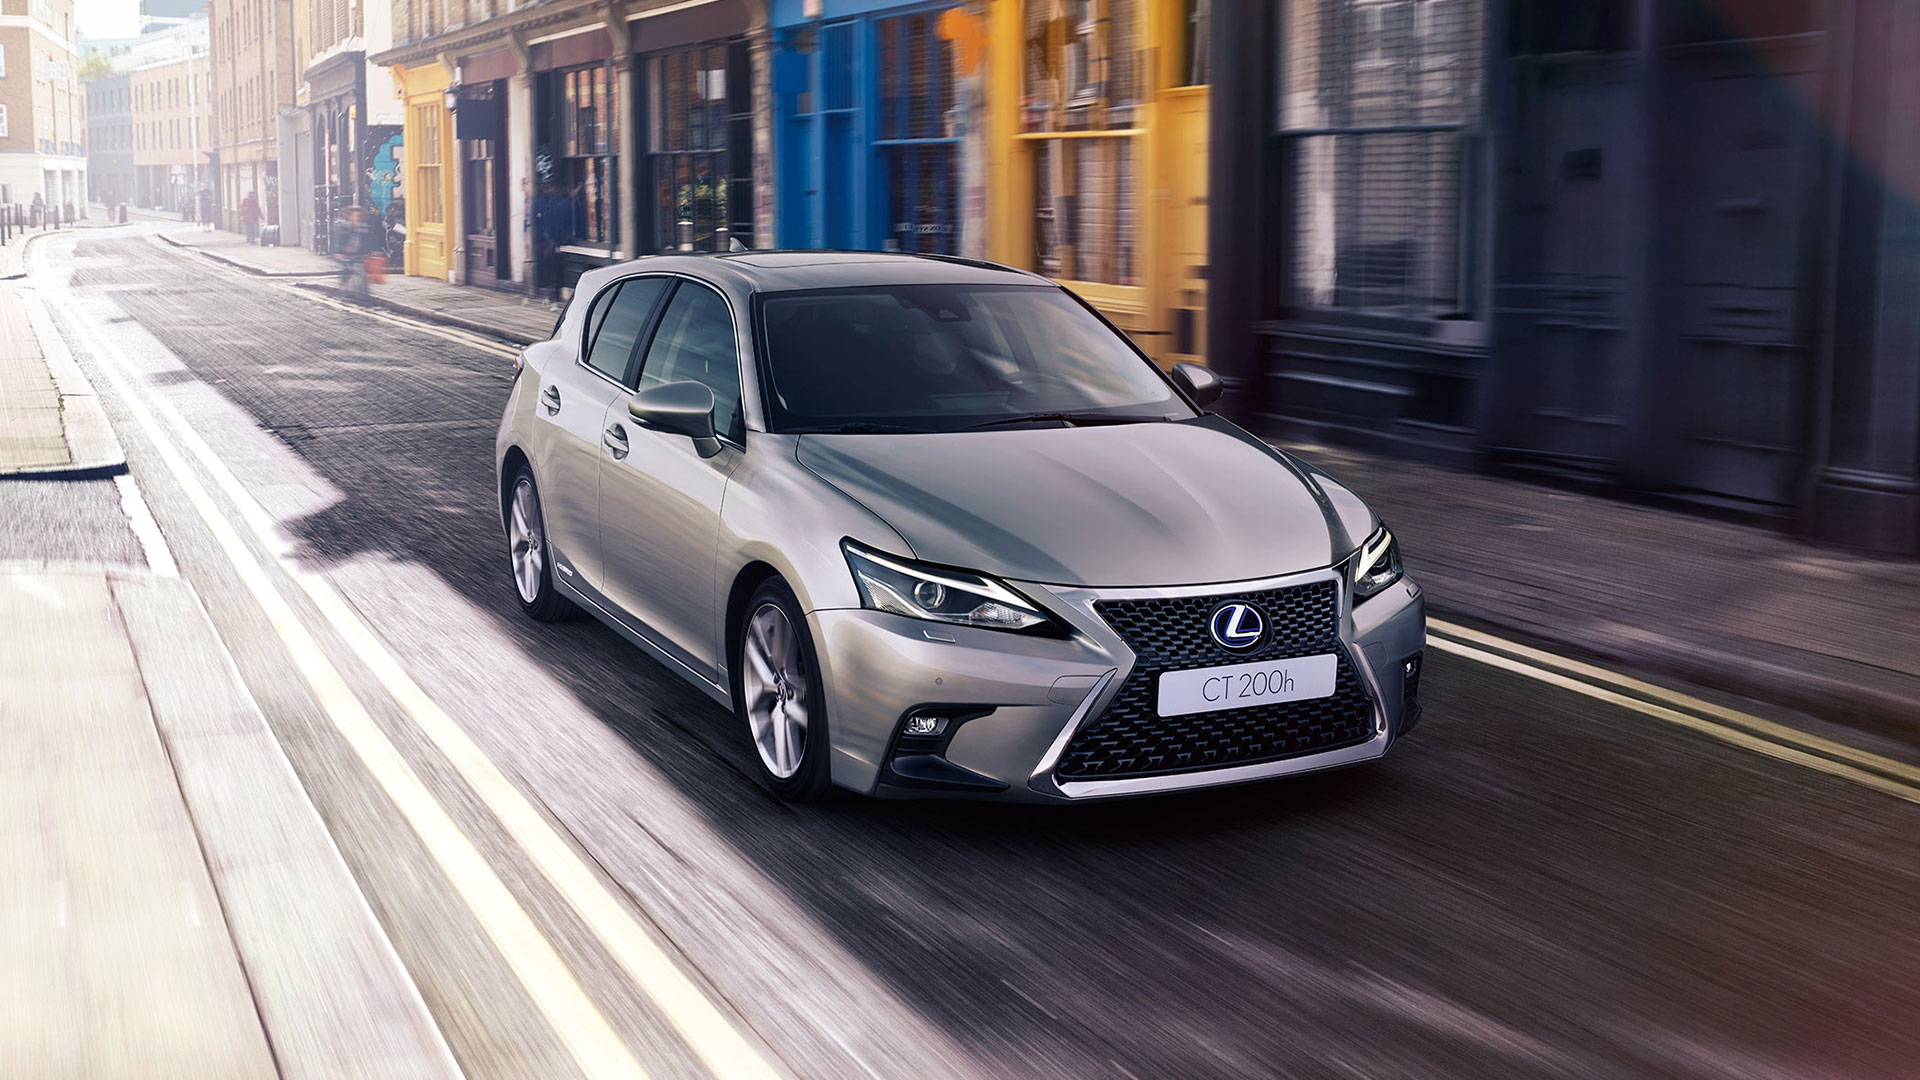 2018 lexus ct 200h my18 gallery 001 exterior